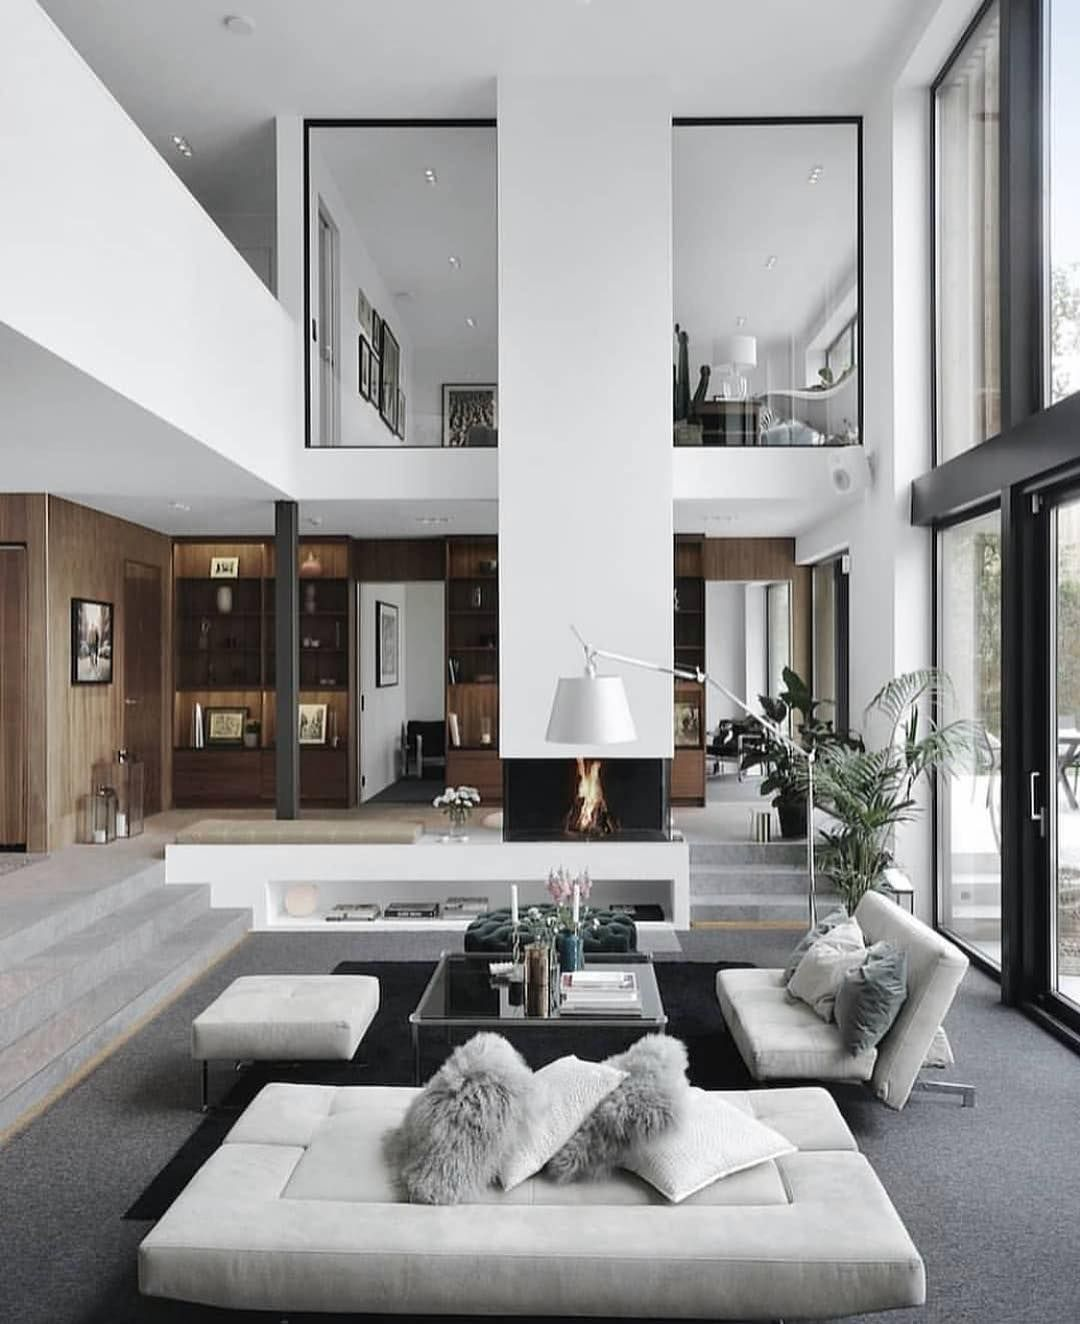 Wall Decor Ideas For Large Walls Contemporary Living Room Design Living Room Design Modern Contemporary Decor Living Room